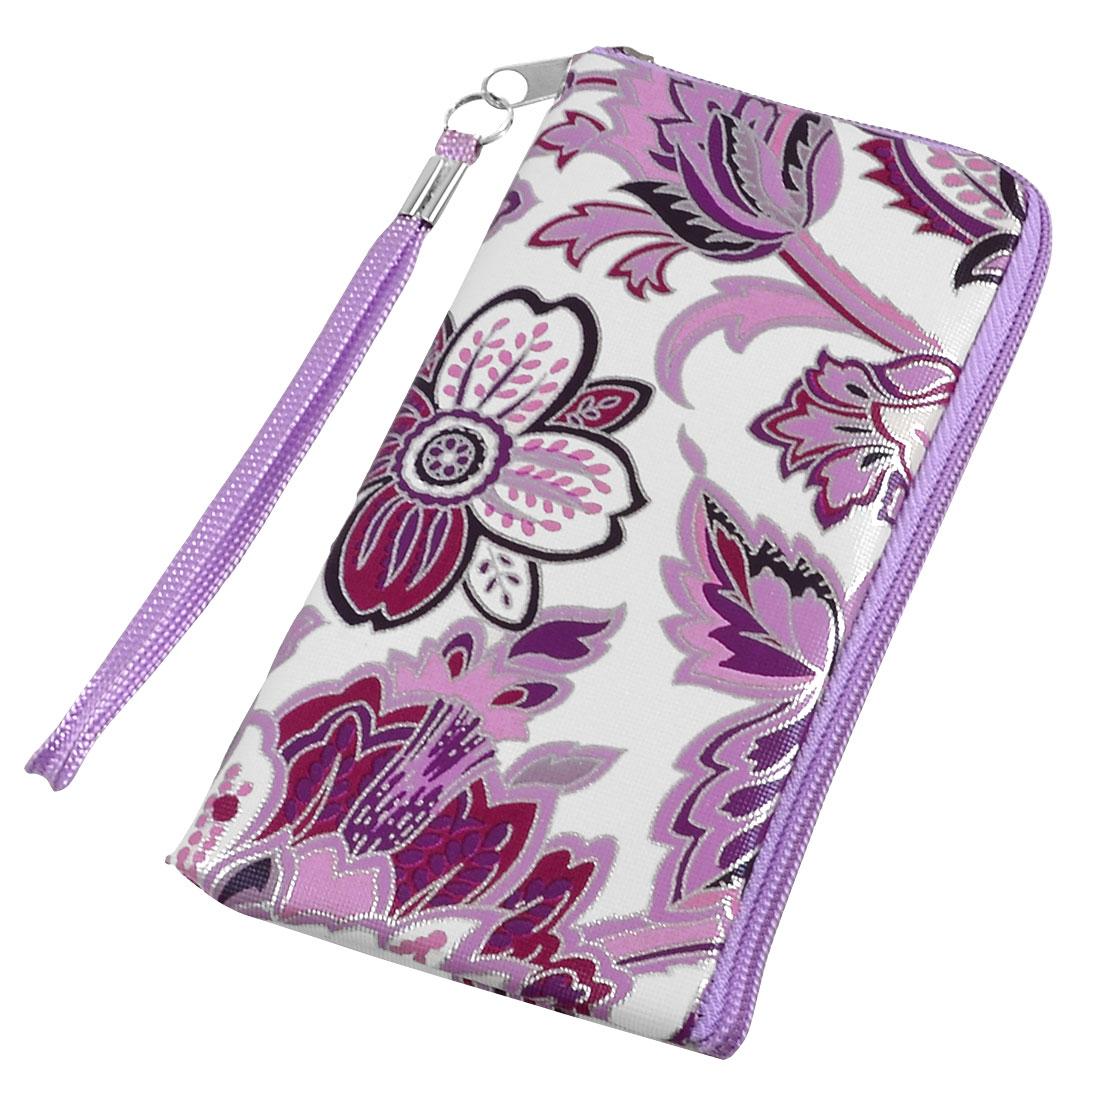 Purple White Floral Prints Cell Phone MP3 MP4 Pouch Bag w Strap